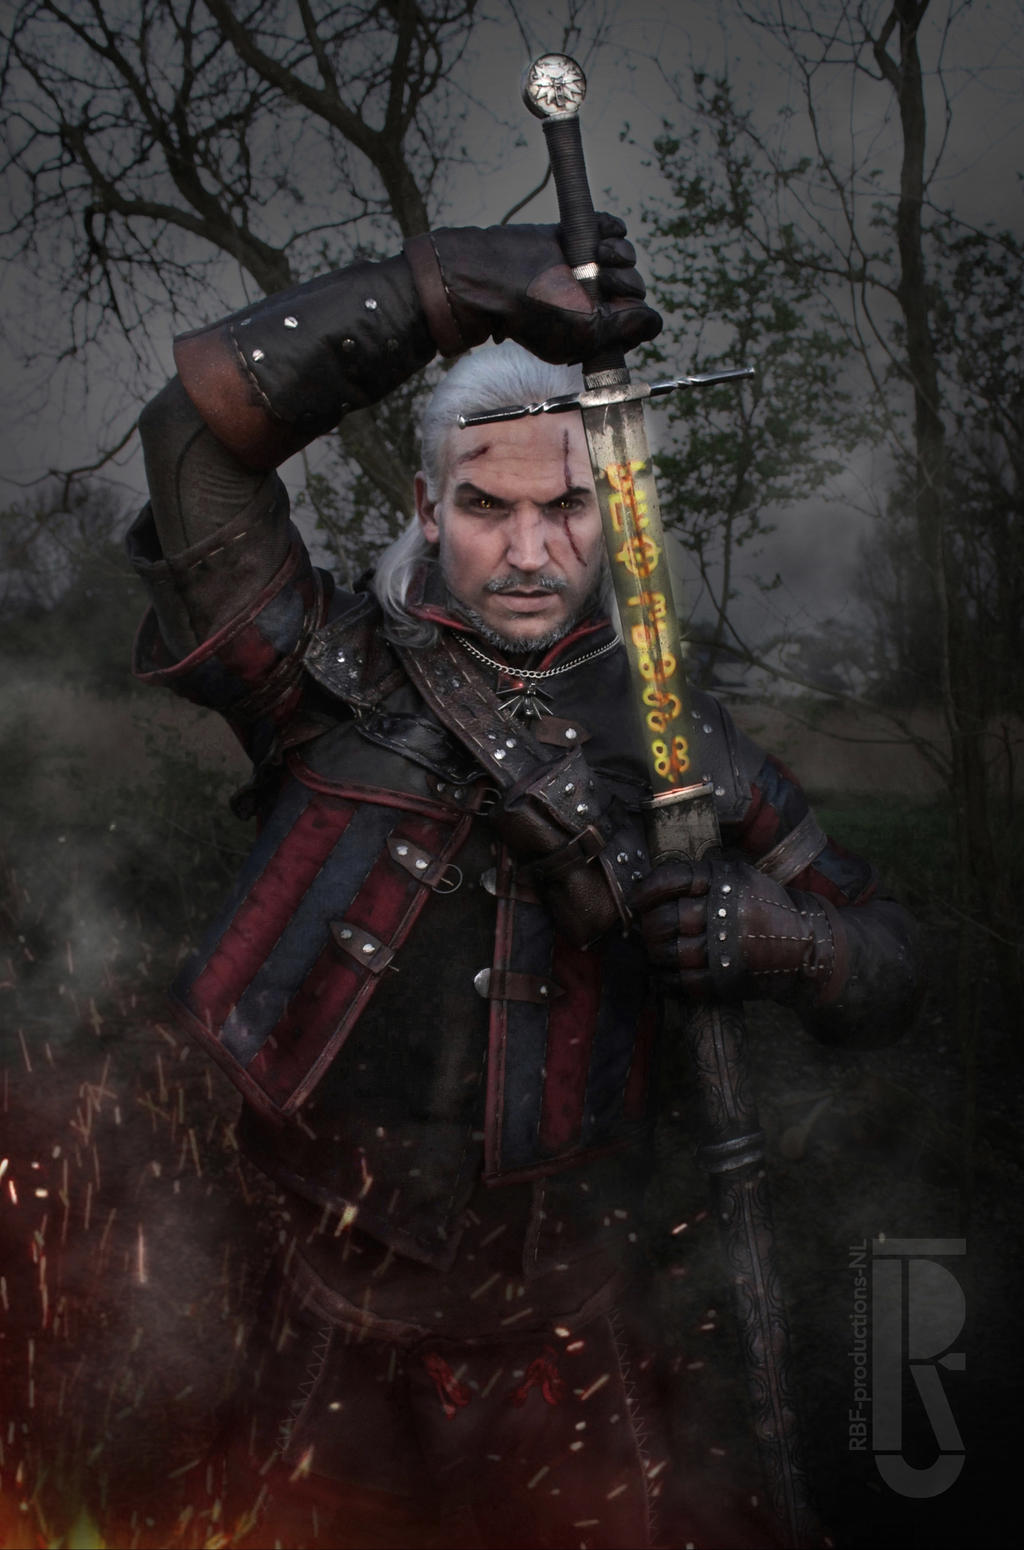 The Butcher Of Blaviken Geralt Of Rivia Cosplay By Rbf Productions Nl On Deviantart Geralt vs renfri (butcher of blaviken) | the witcher. the butcher of blaviken geralt of